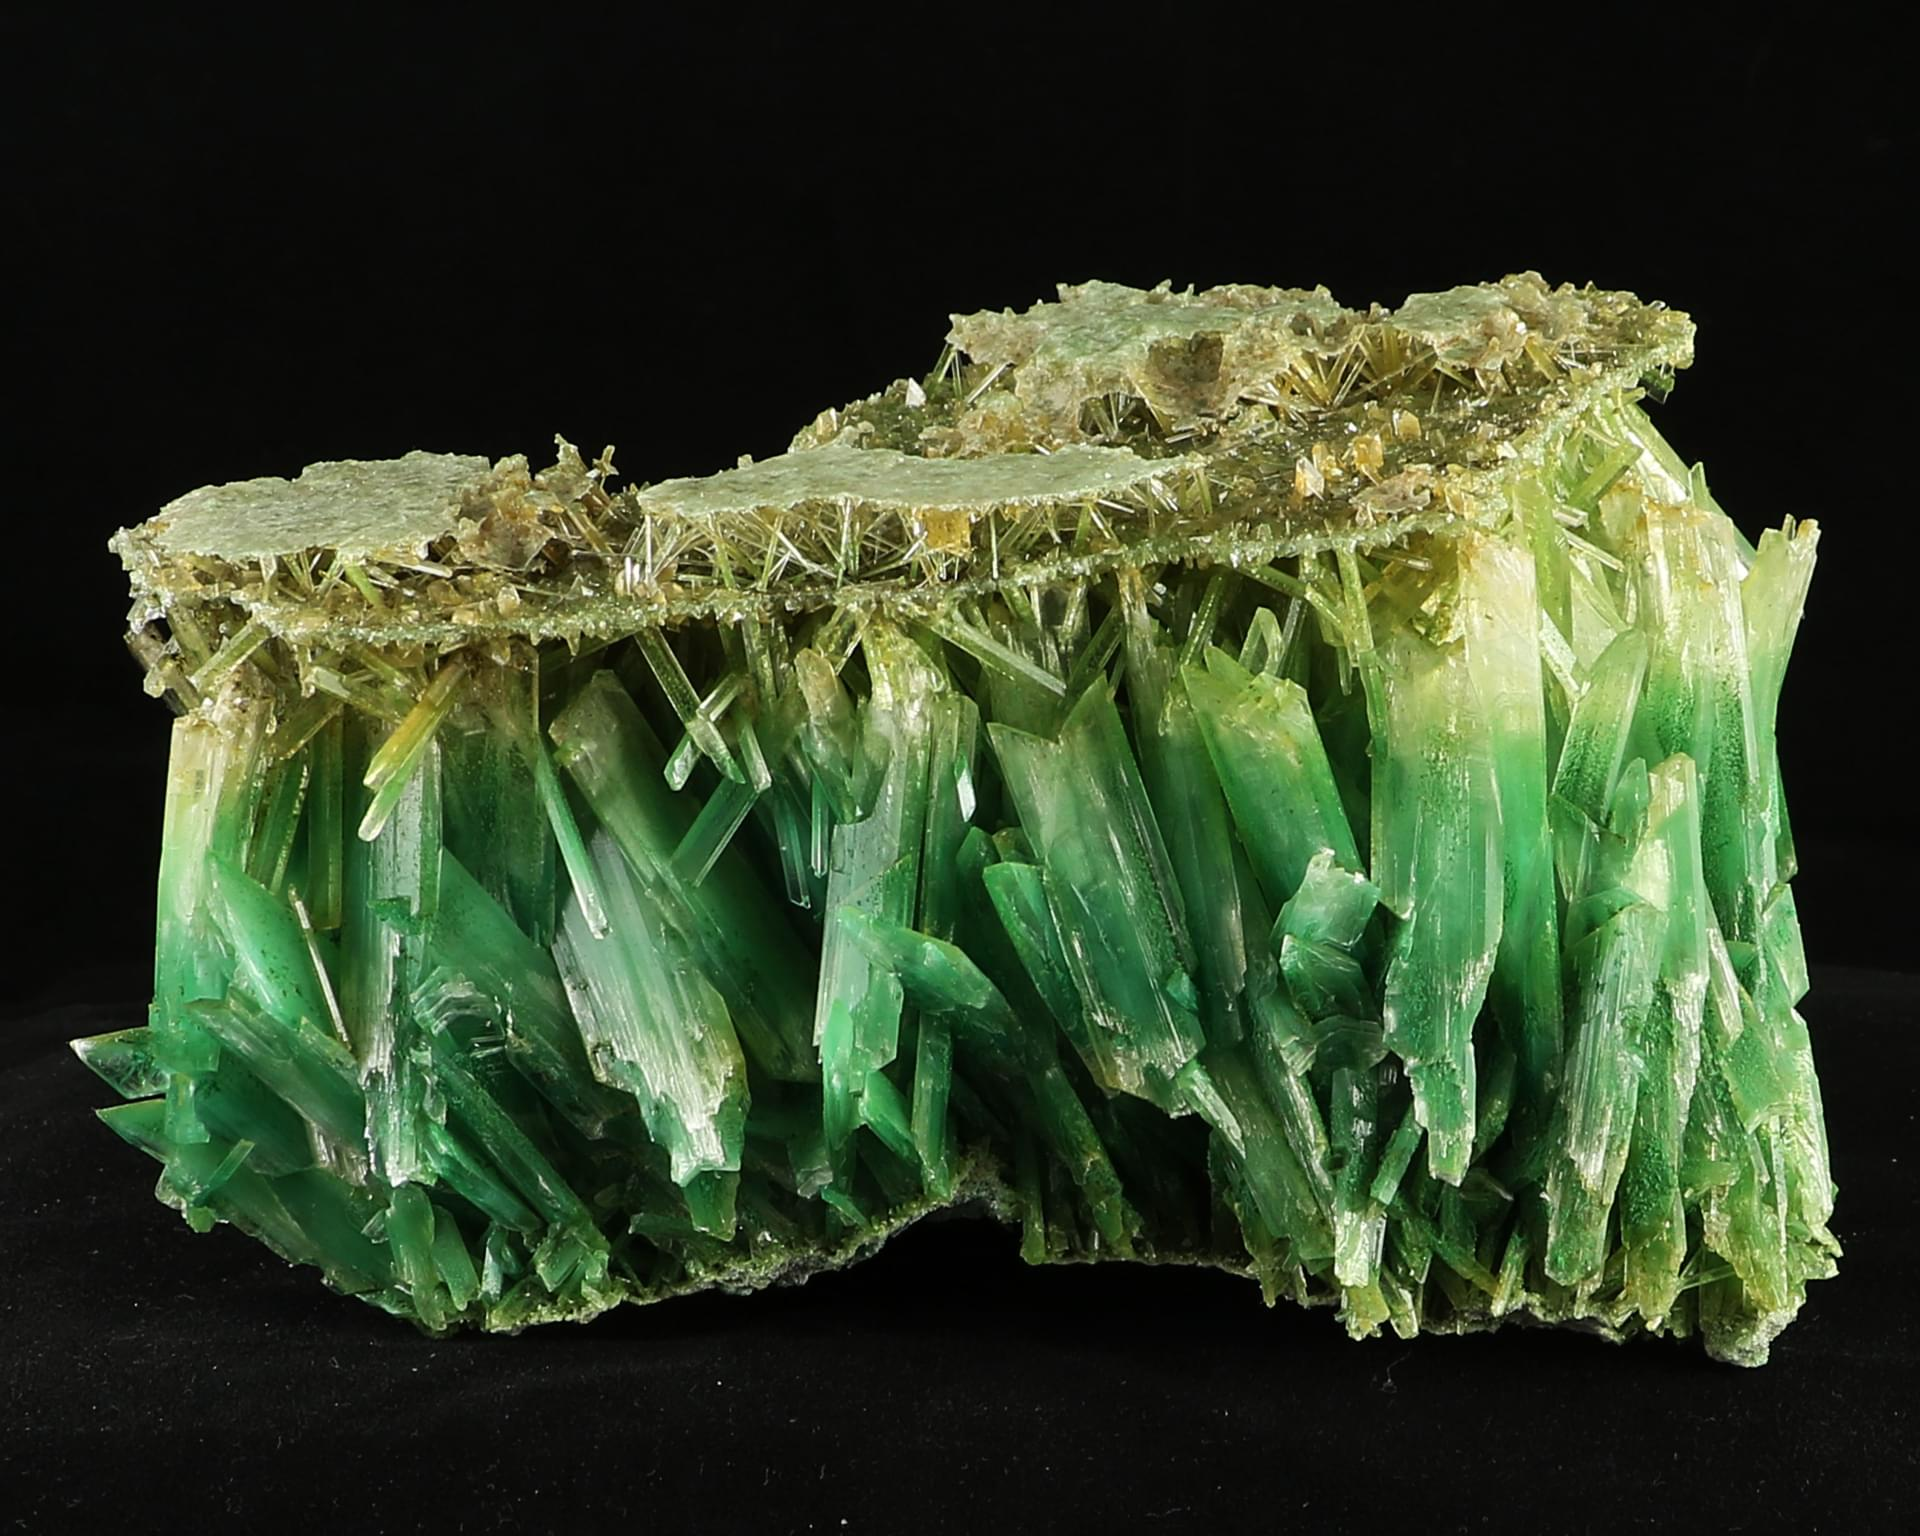 Cabinet size sharp gypsum crystals deep green color lubin for Gypsum colour